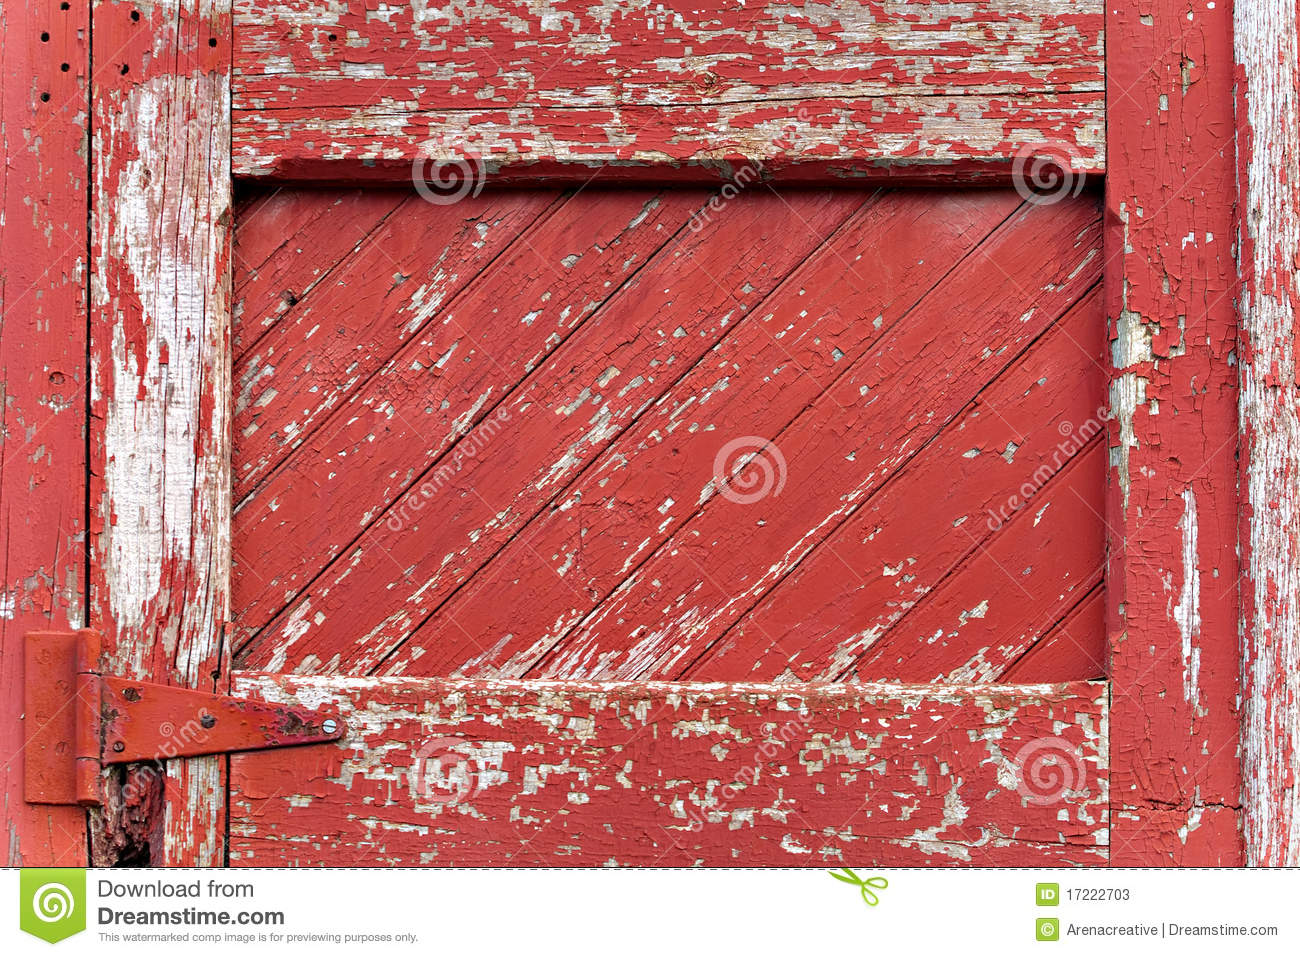 Red painted wood paneling stock image image of hinge 17222703 - Red exterior wood paint plan ...